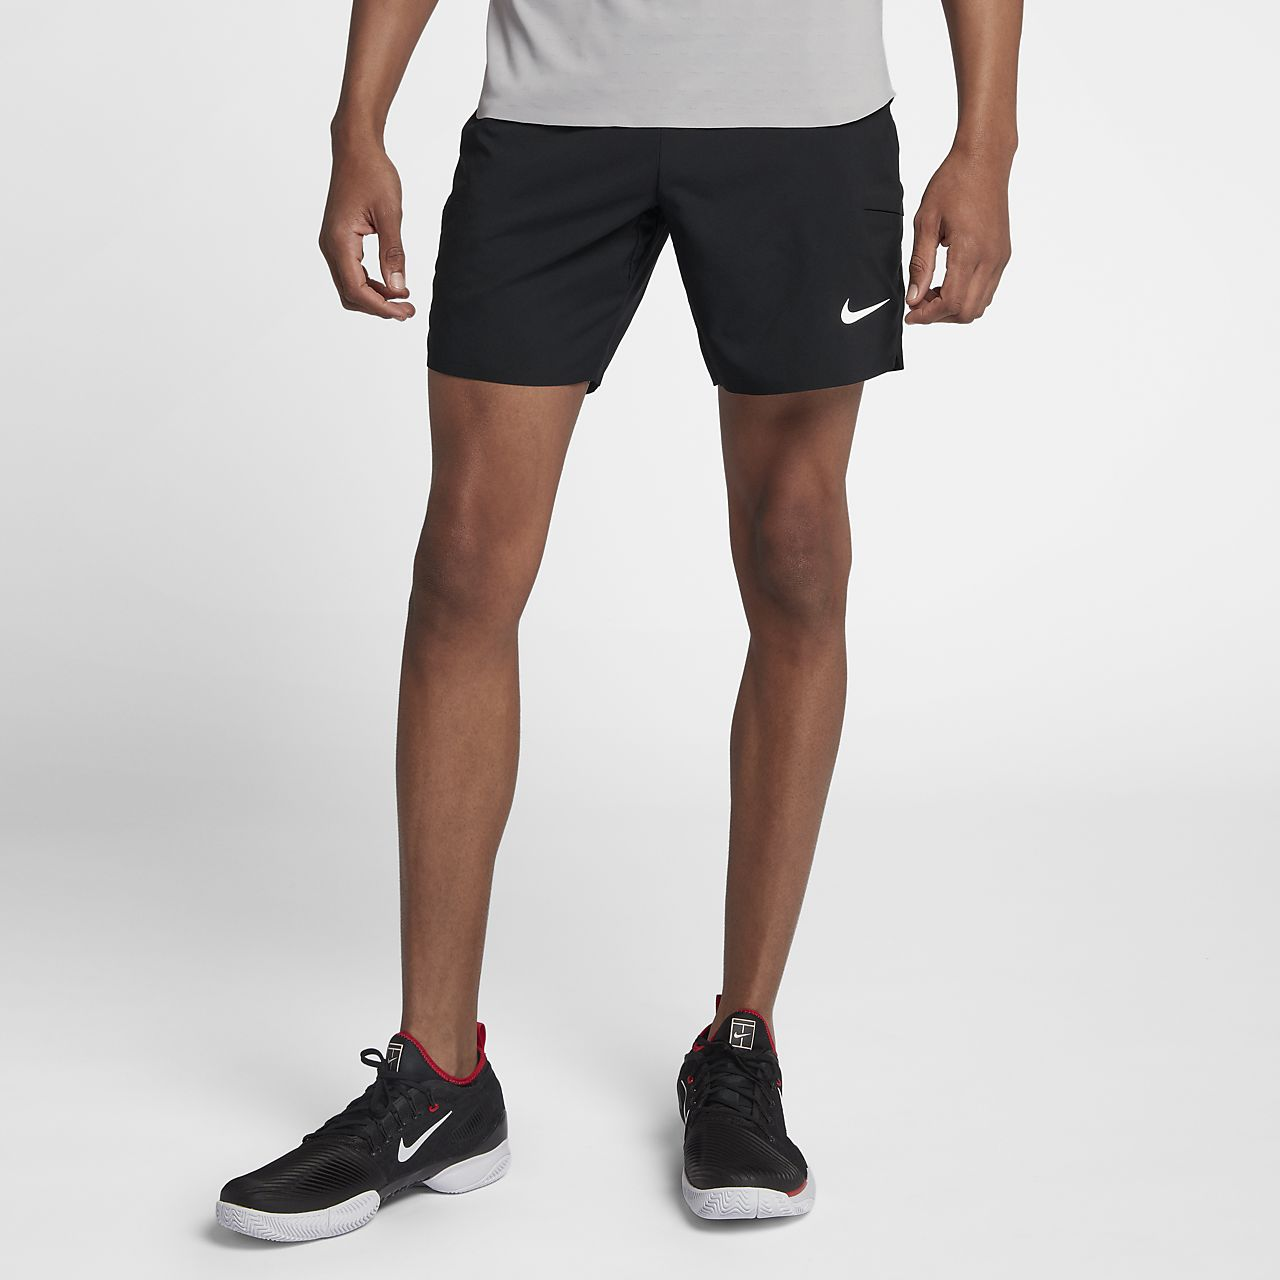 "NikeCourt Flex Ace Men's 7"" (18cm approx.) Tennis Shorts. Nike.com LU"